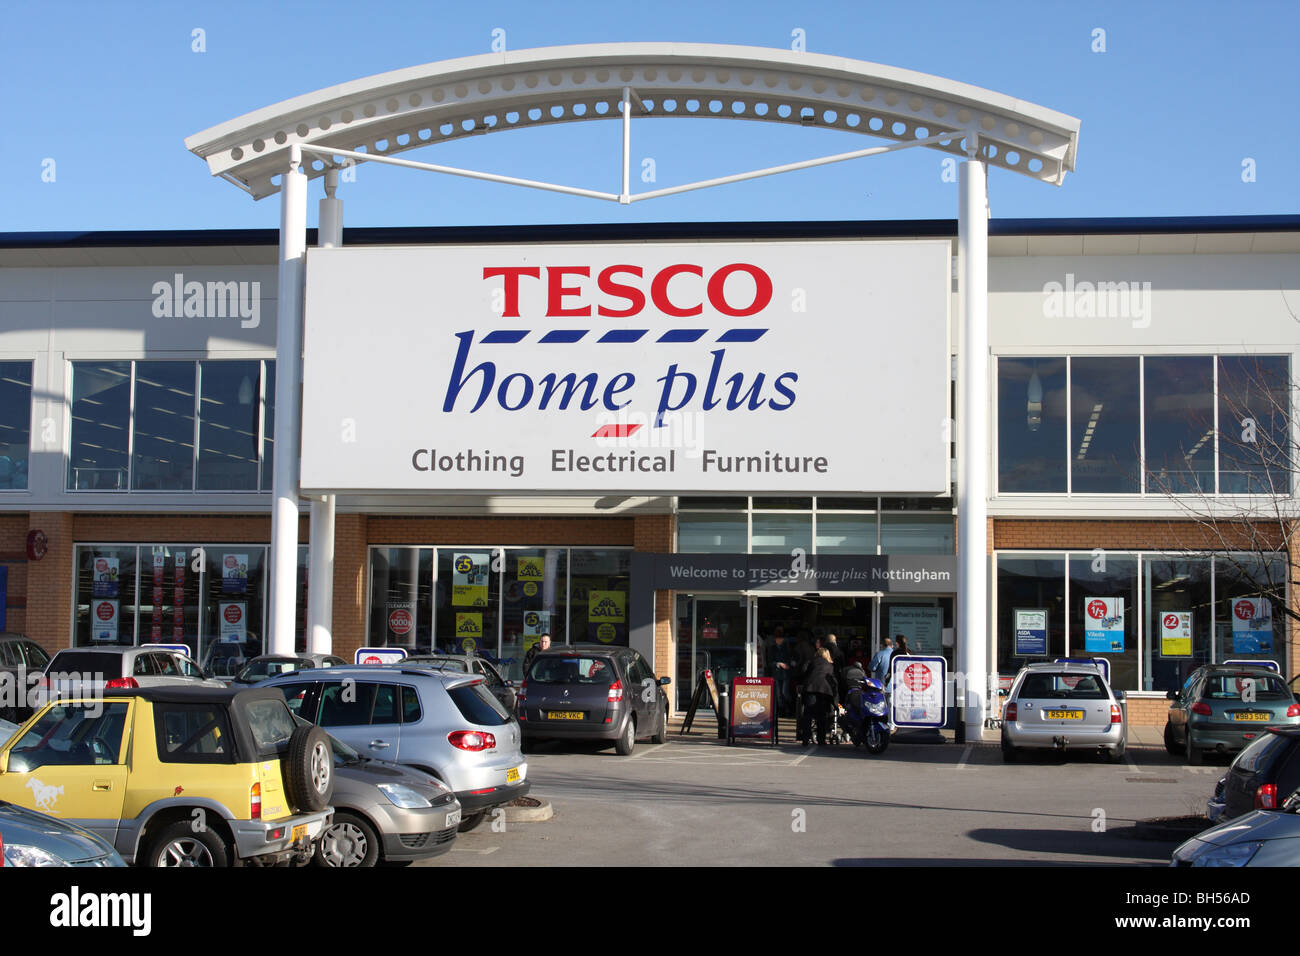 A Tesco Home Plus Store On A Retail Park In Nottingham England U K Stock Photo Royalty Free